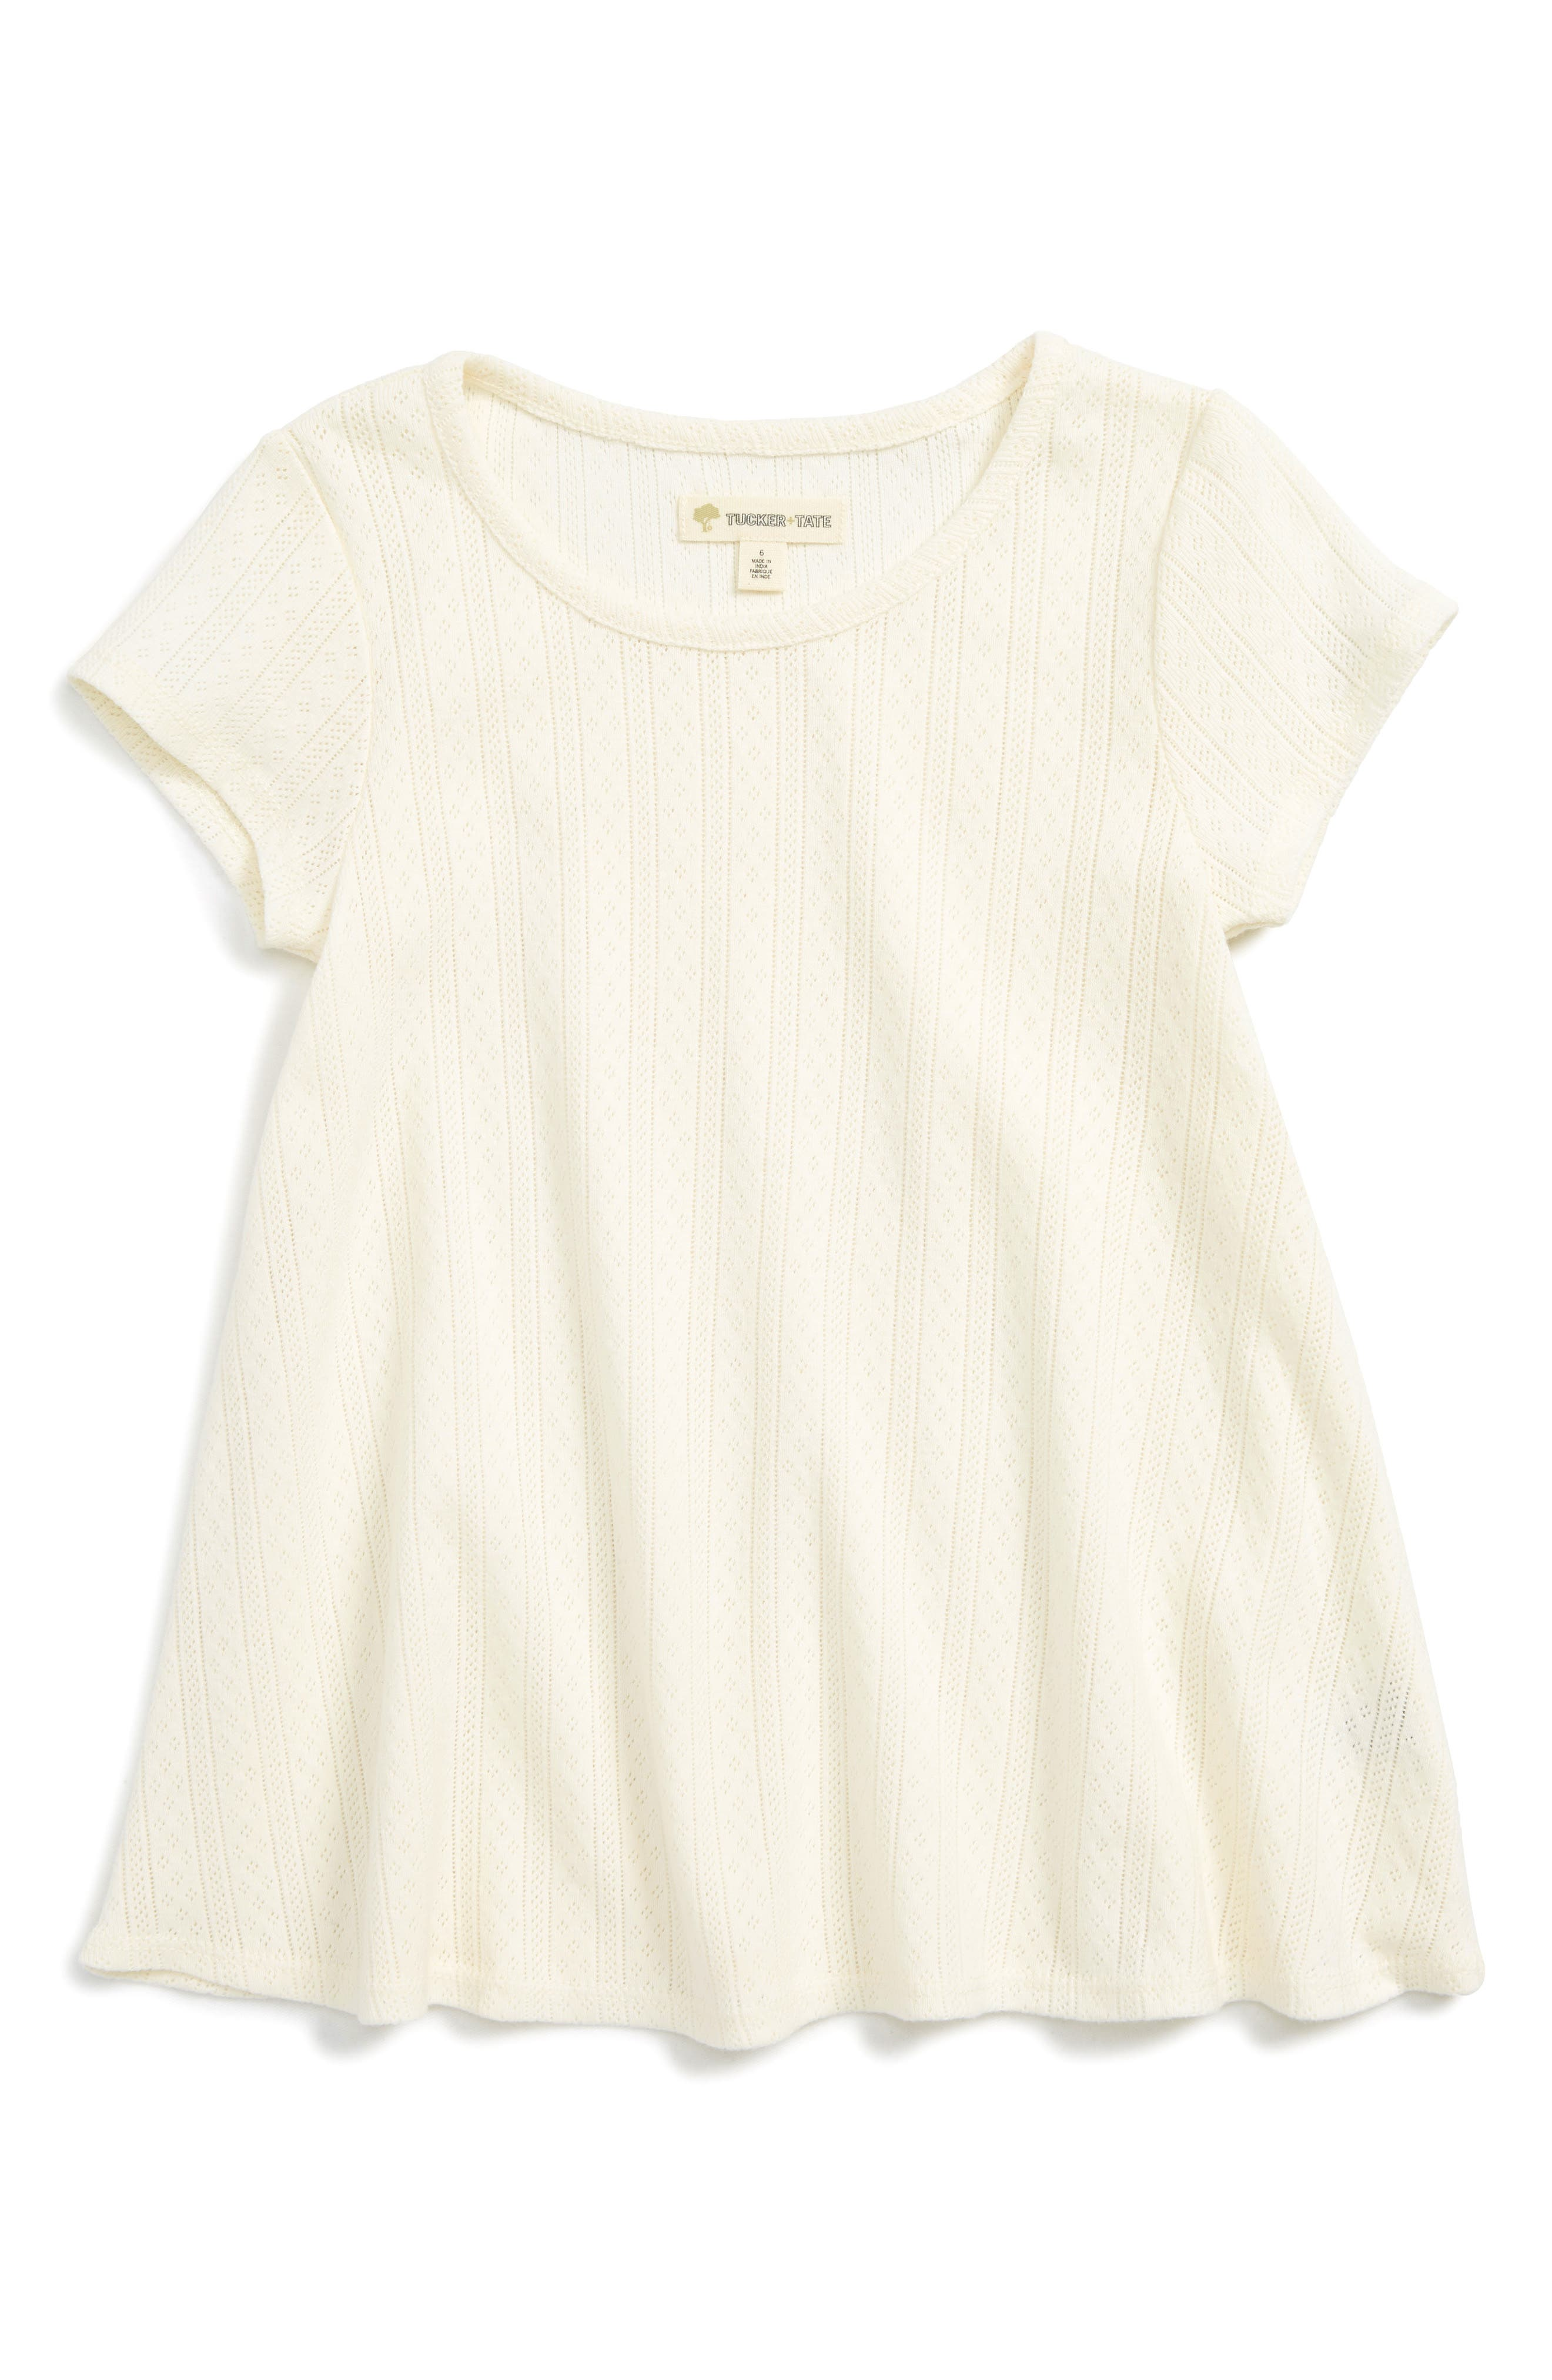 Tucker + Tate Pointelle Tee (Toddler Girls, Little Girls & Big Girls)